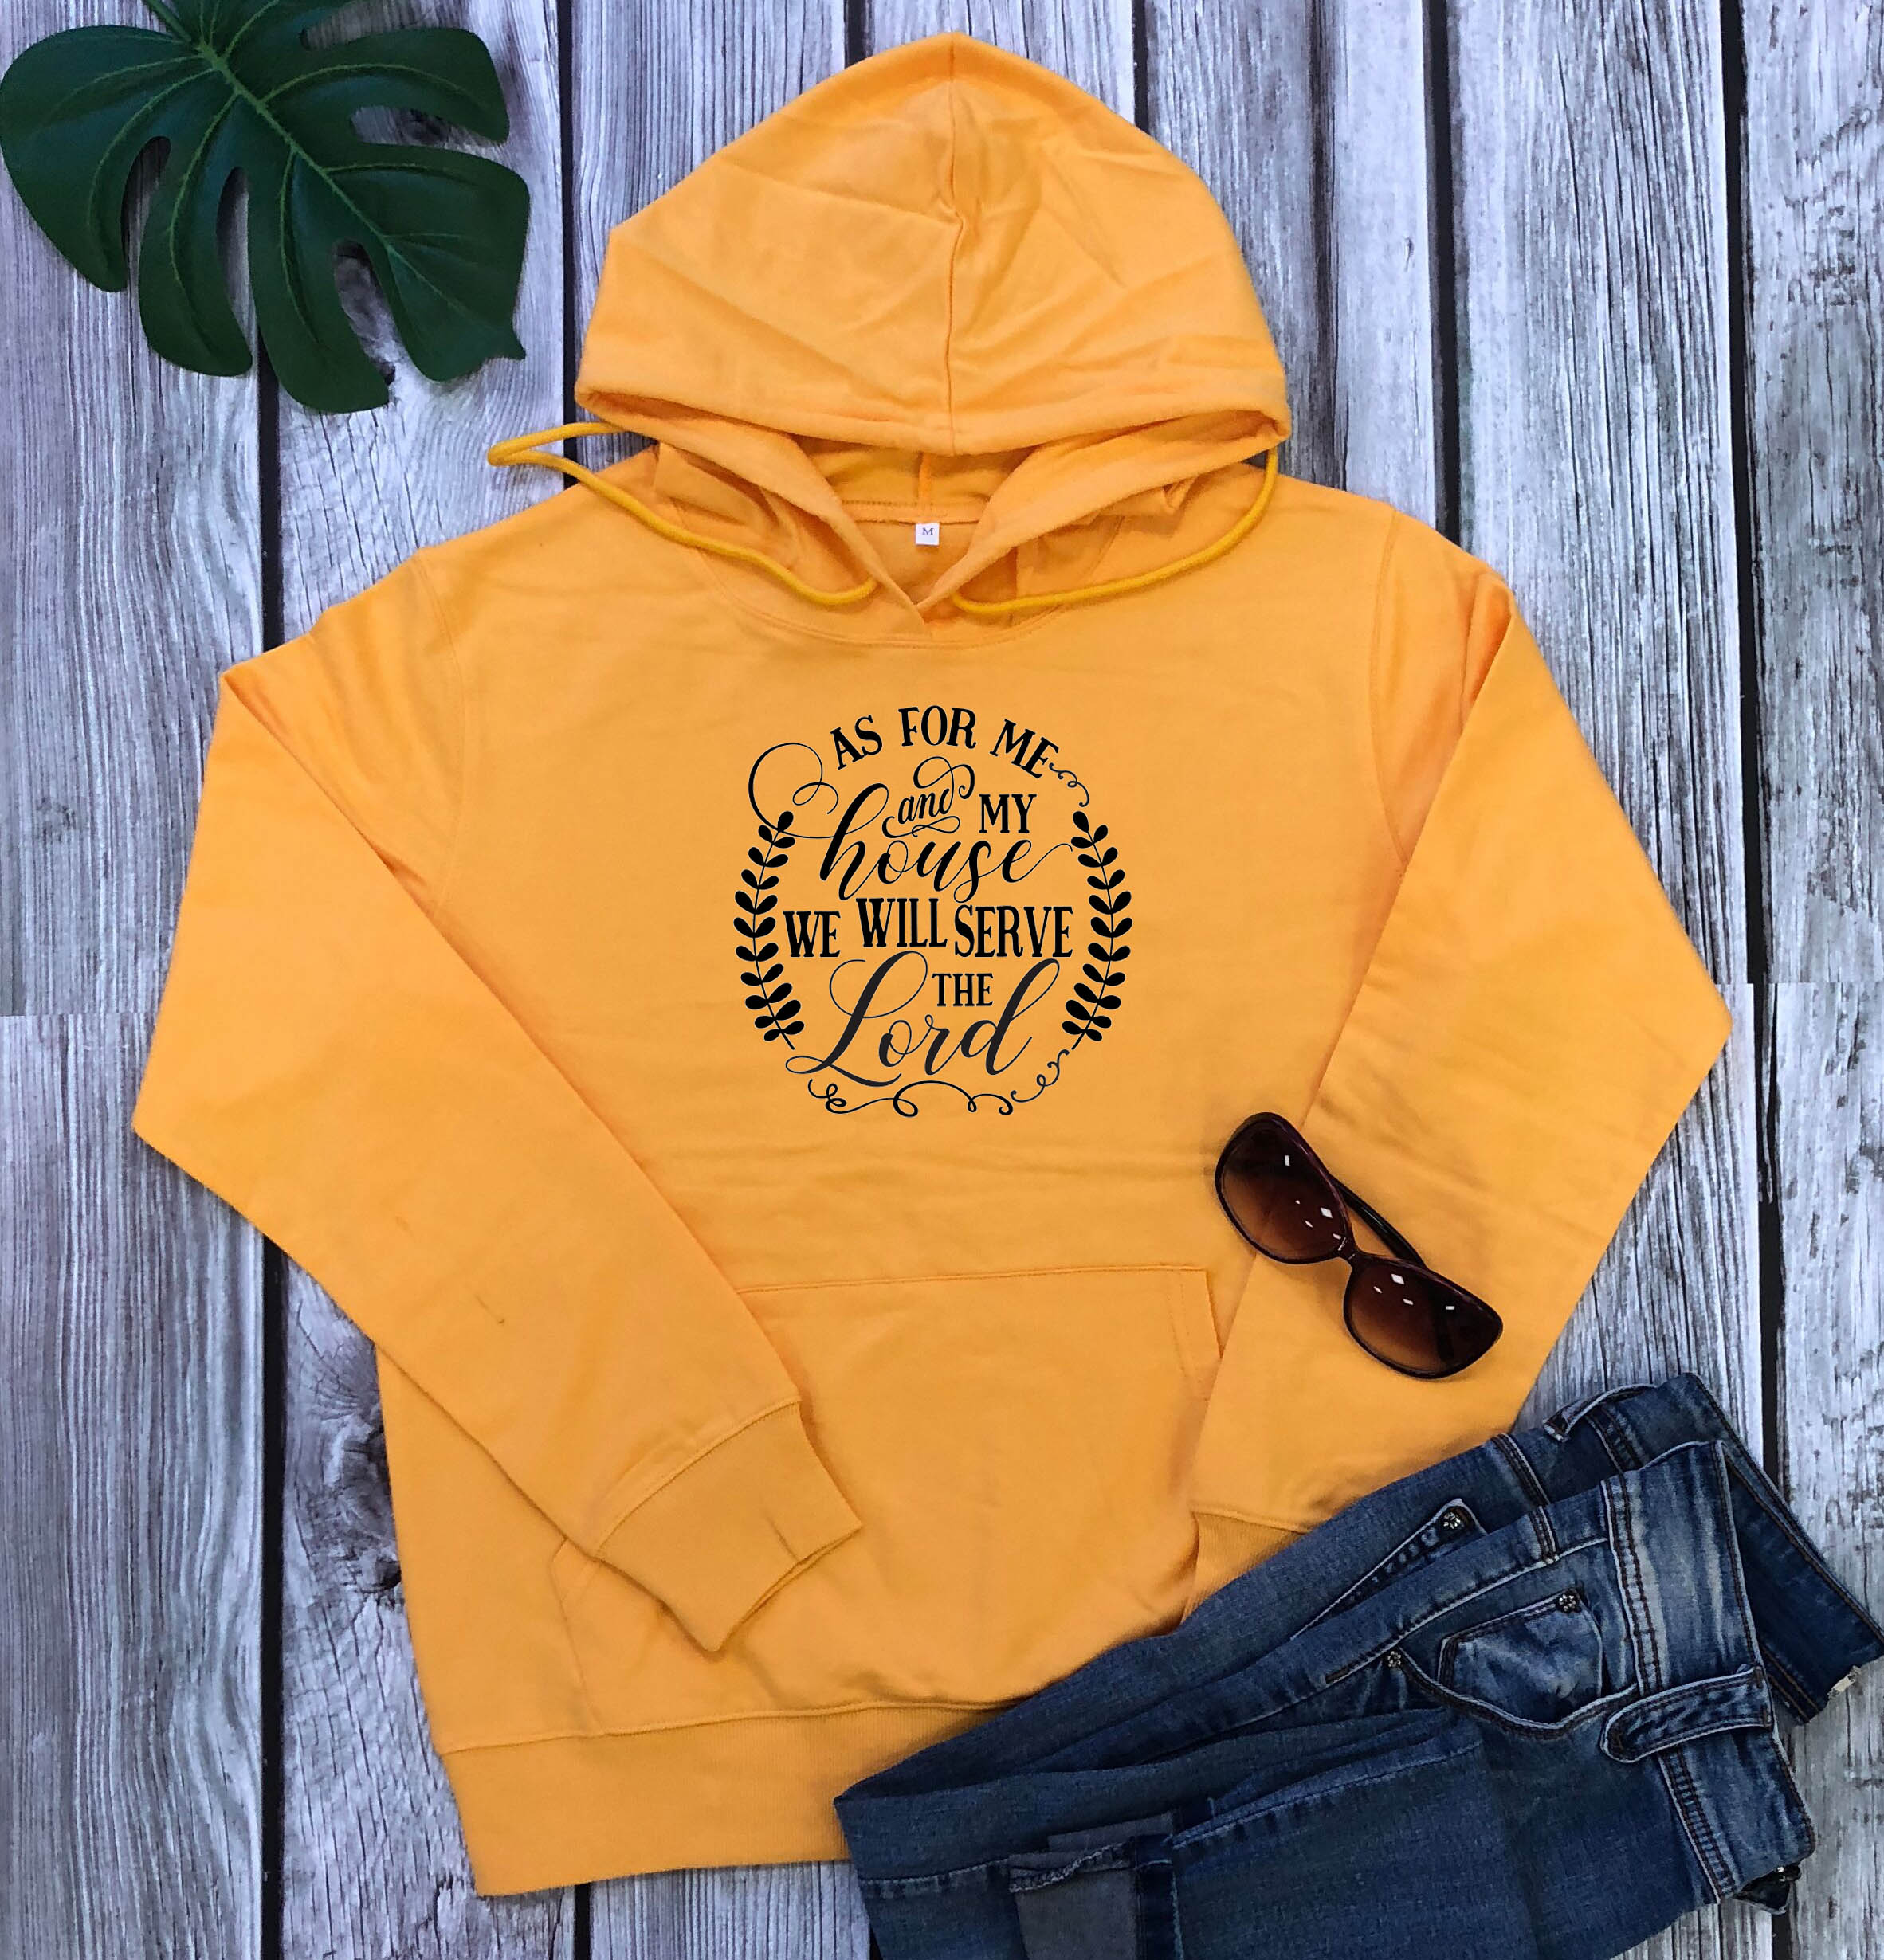 As For Me And My House We Will Serve The Lord Hoodies Women Fashion Pure Cotton Casual Christian Bible Baptism Pullovers Tops